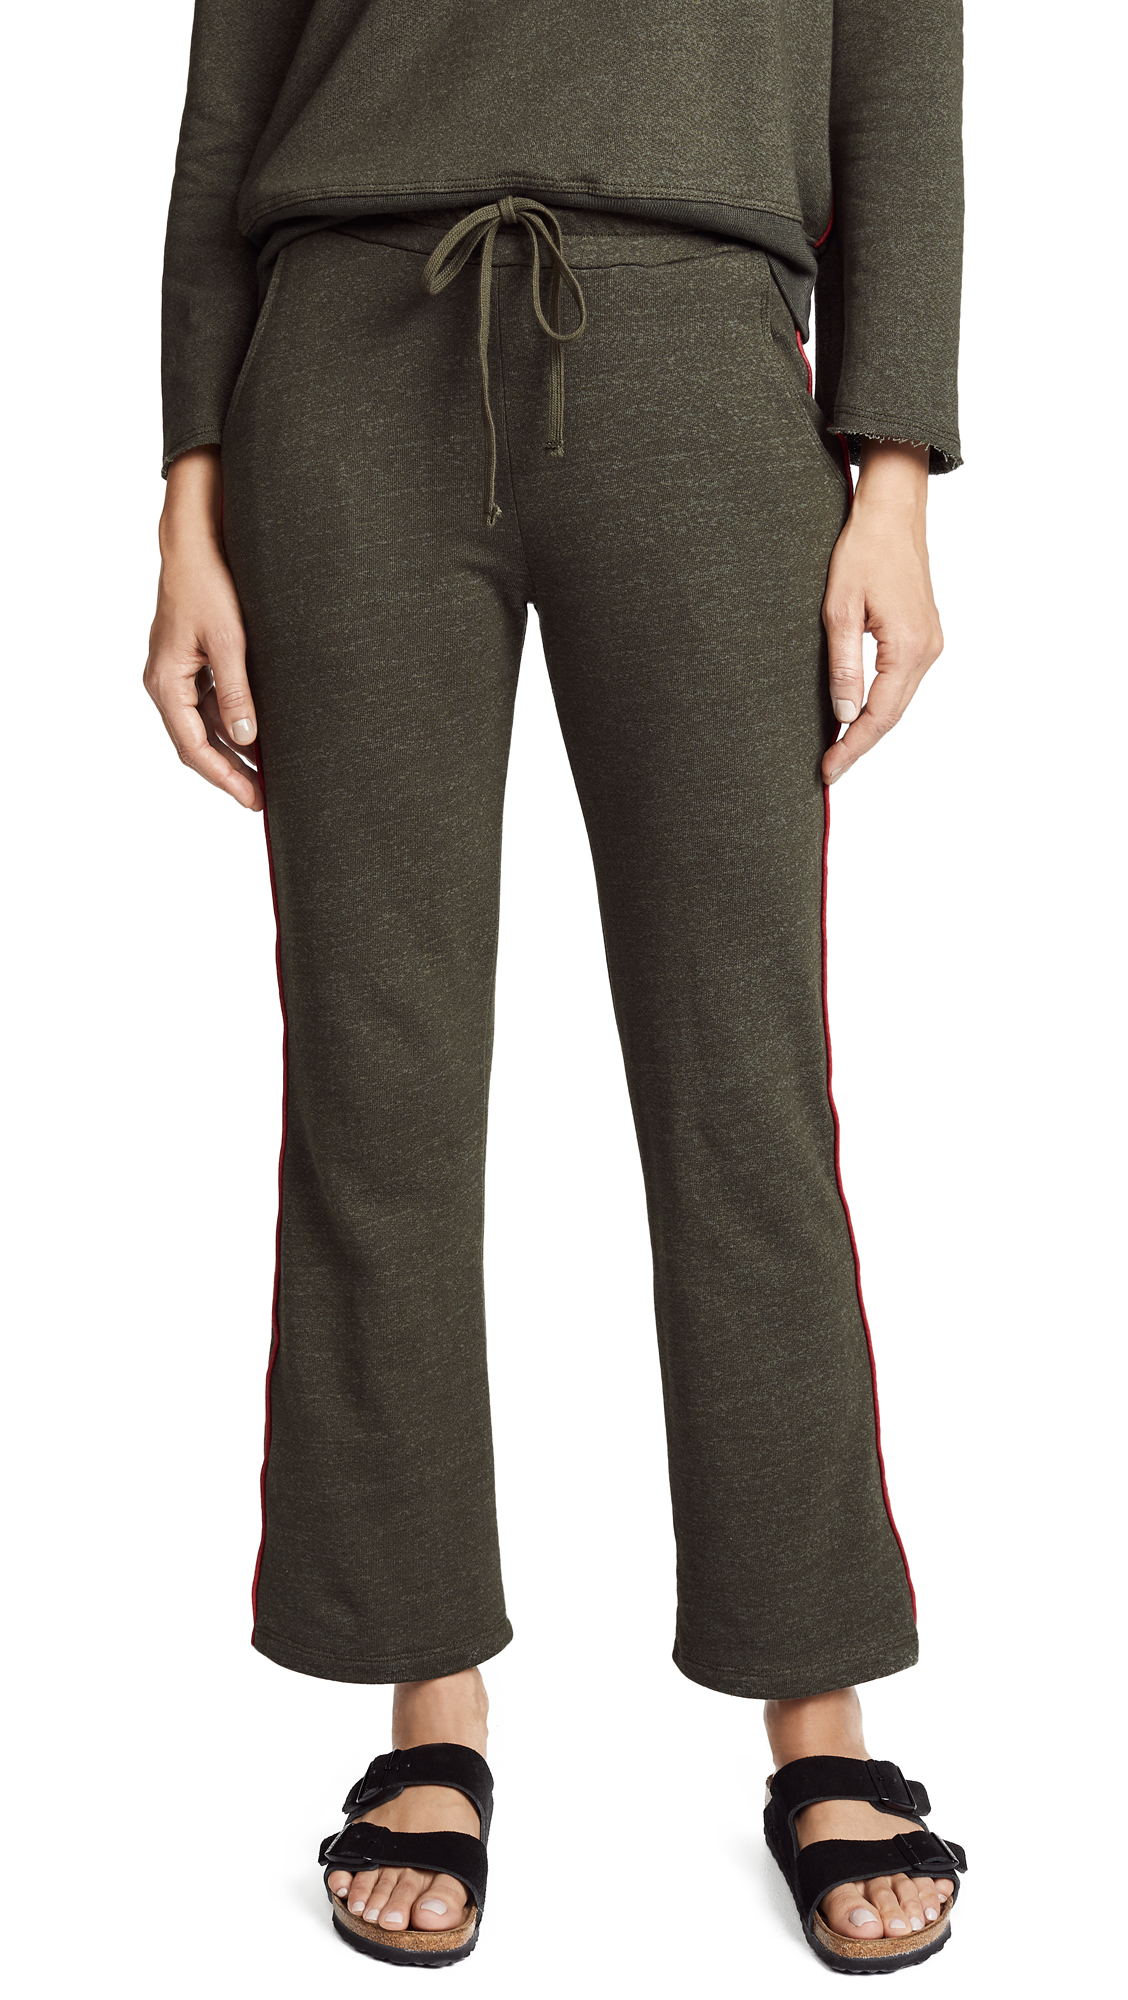 SUNDRY PIPED SWEATPANTS